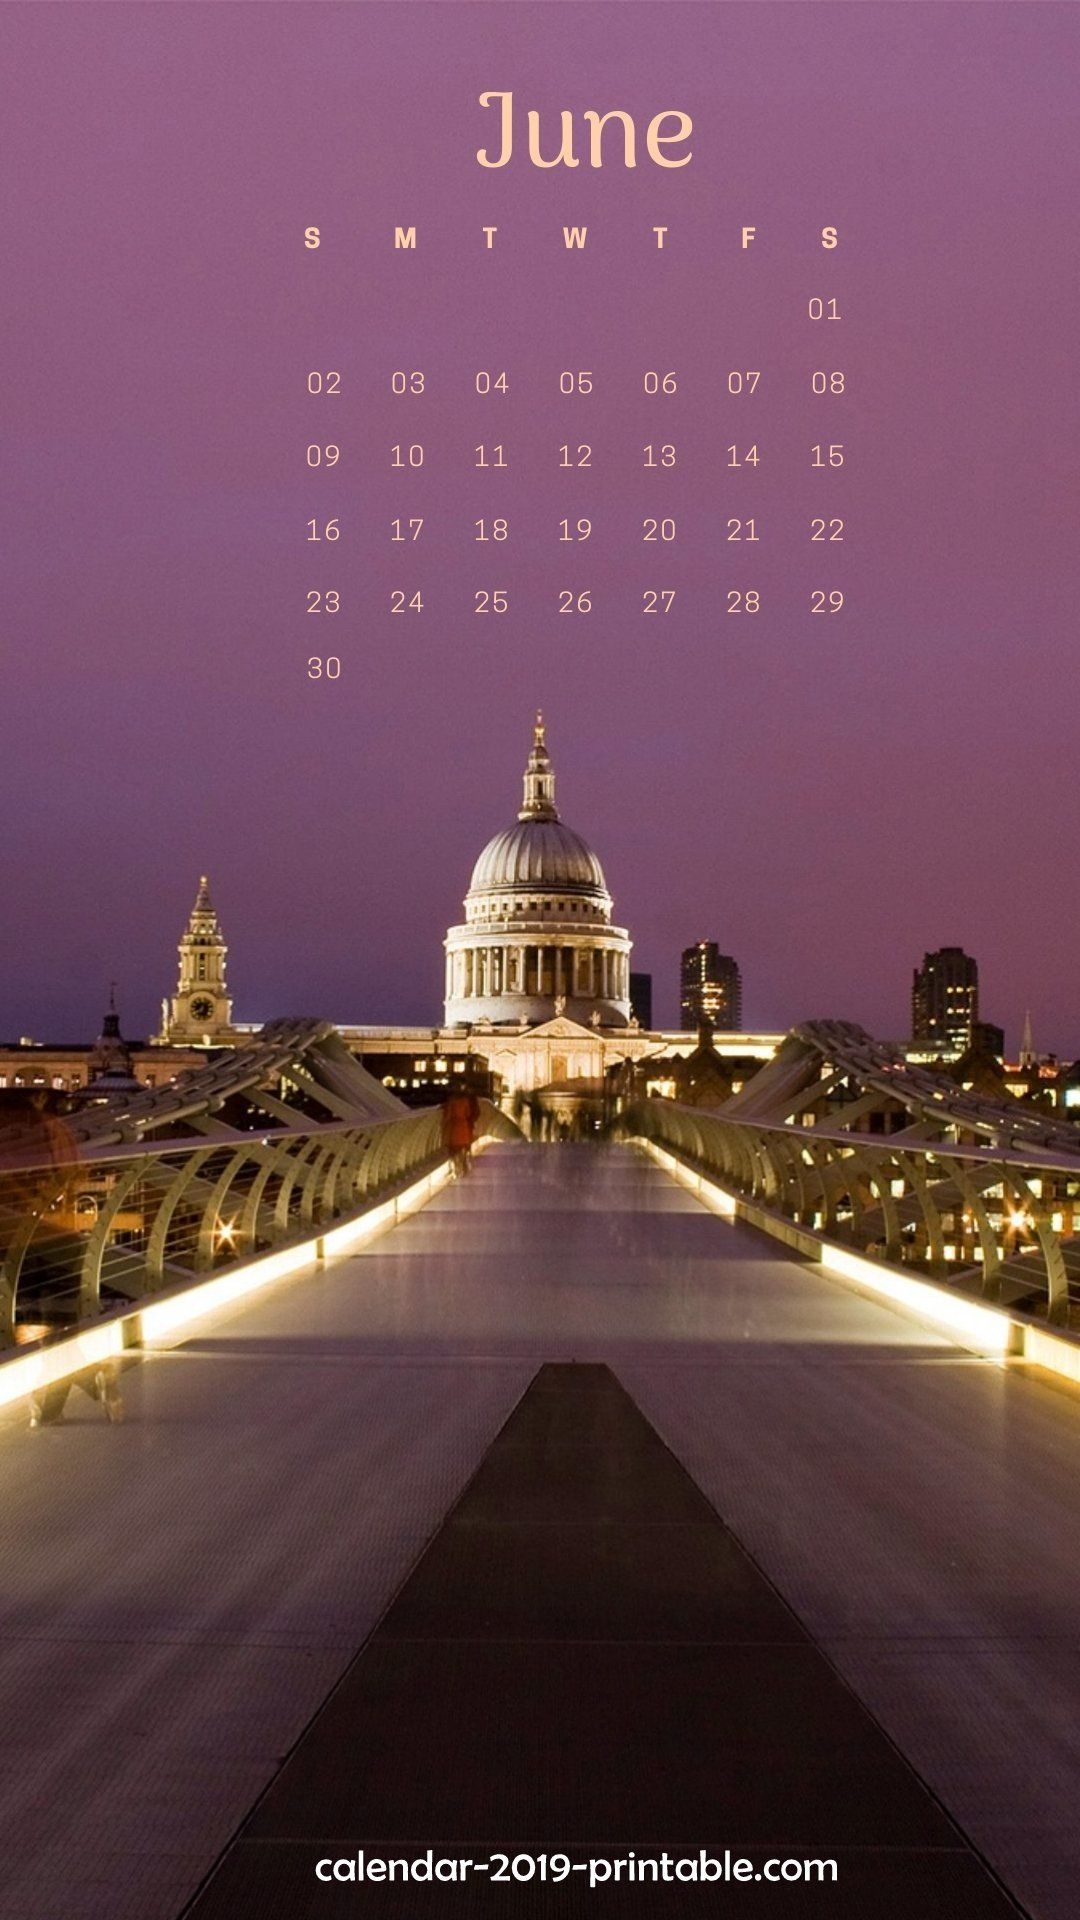 iPhone Calendar Wallpaper June 2019